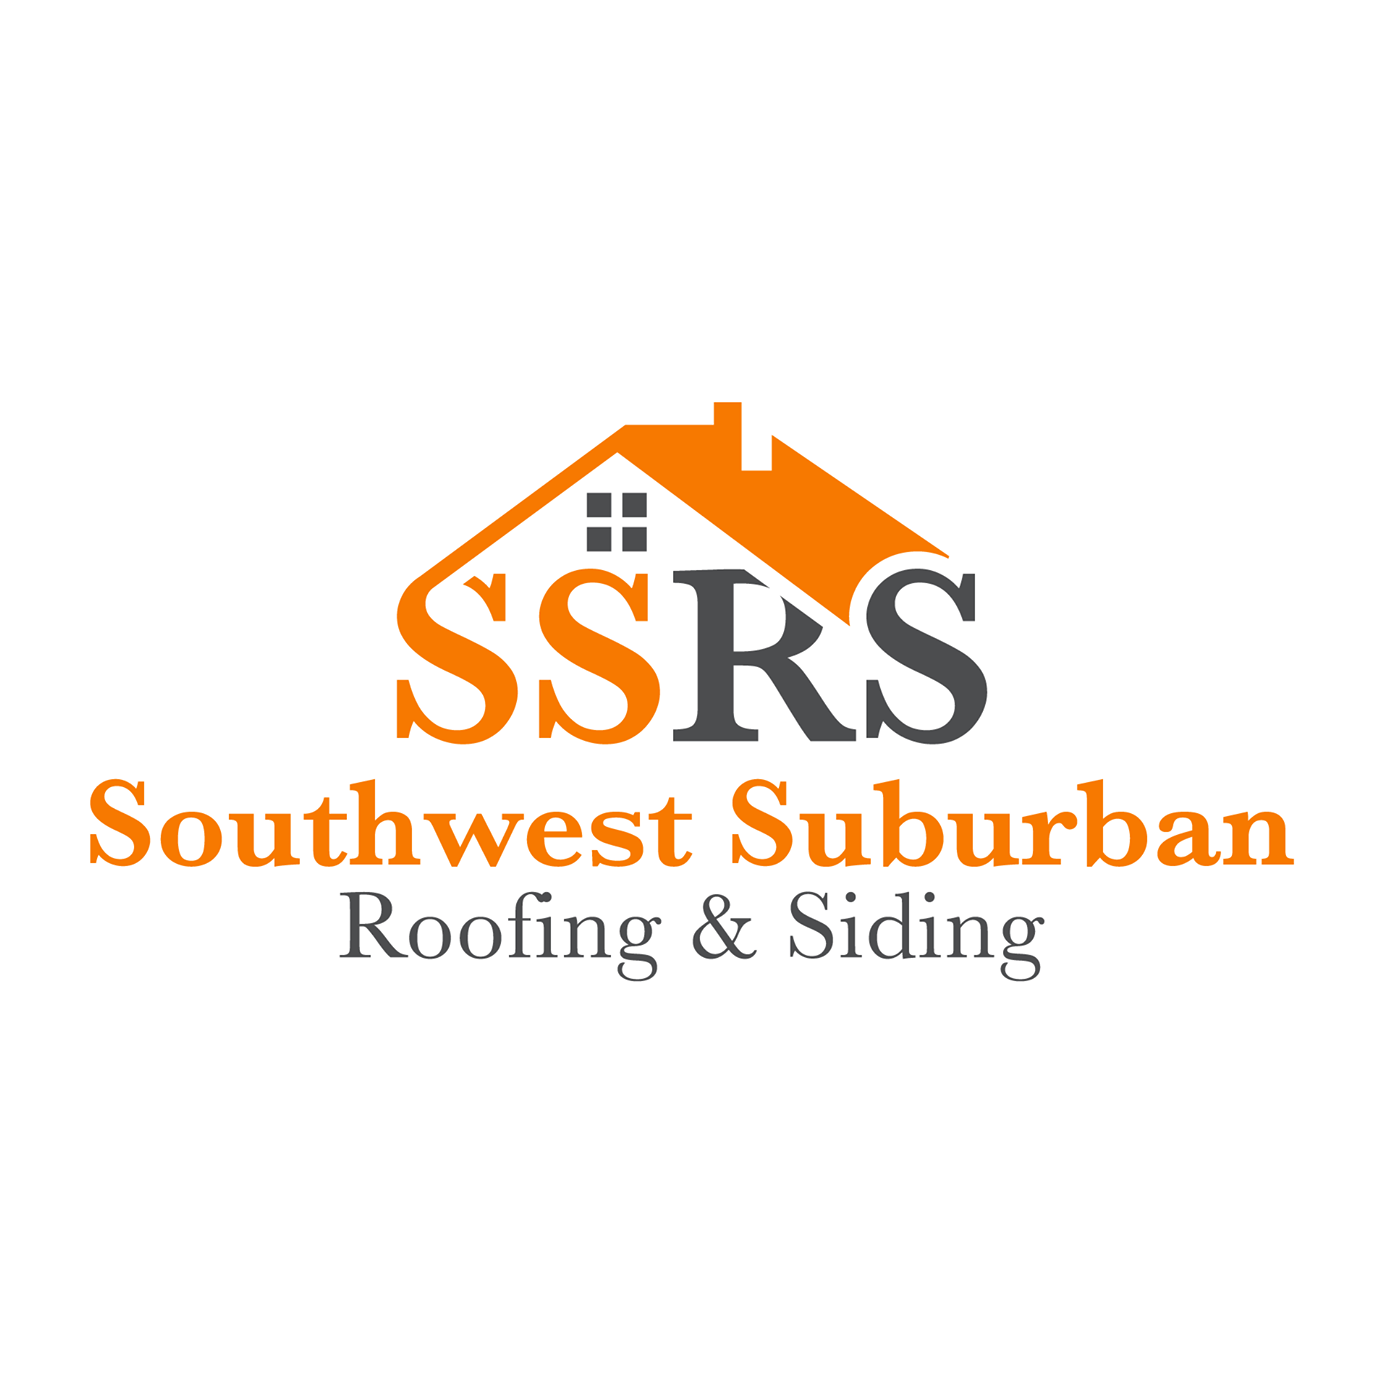 Southwest Suburban Roofing and Siding